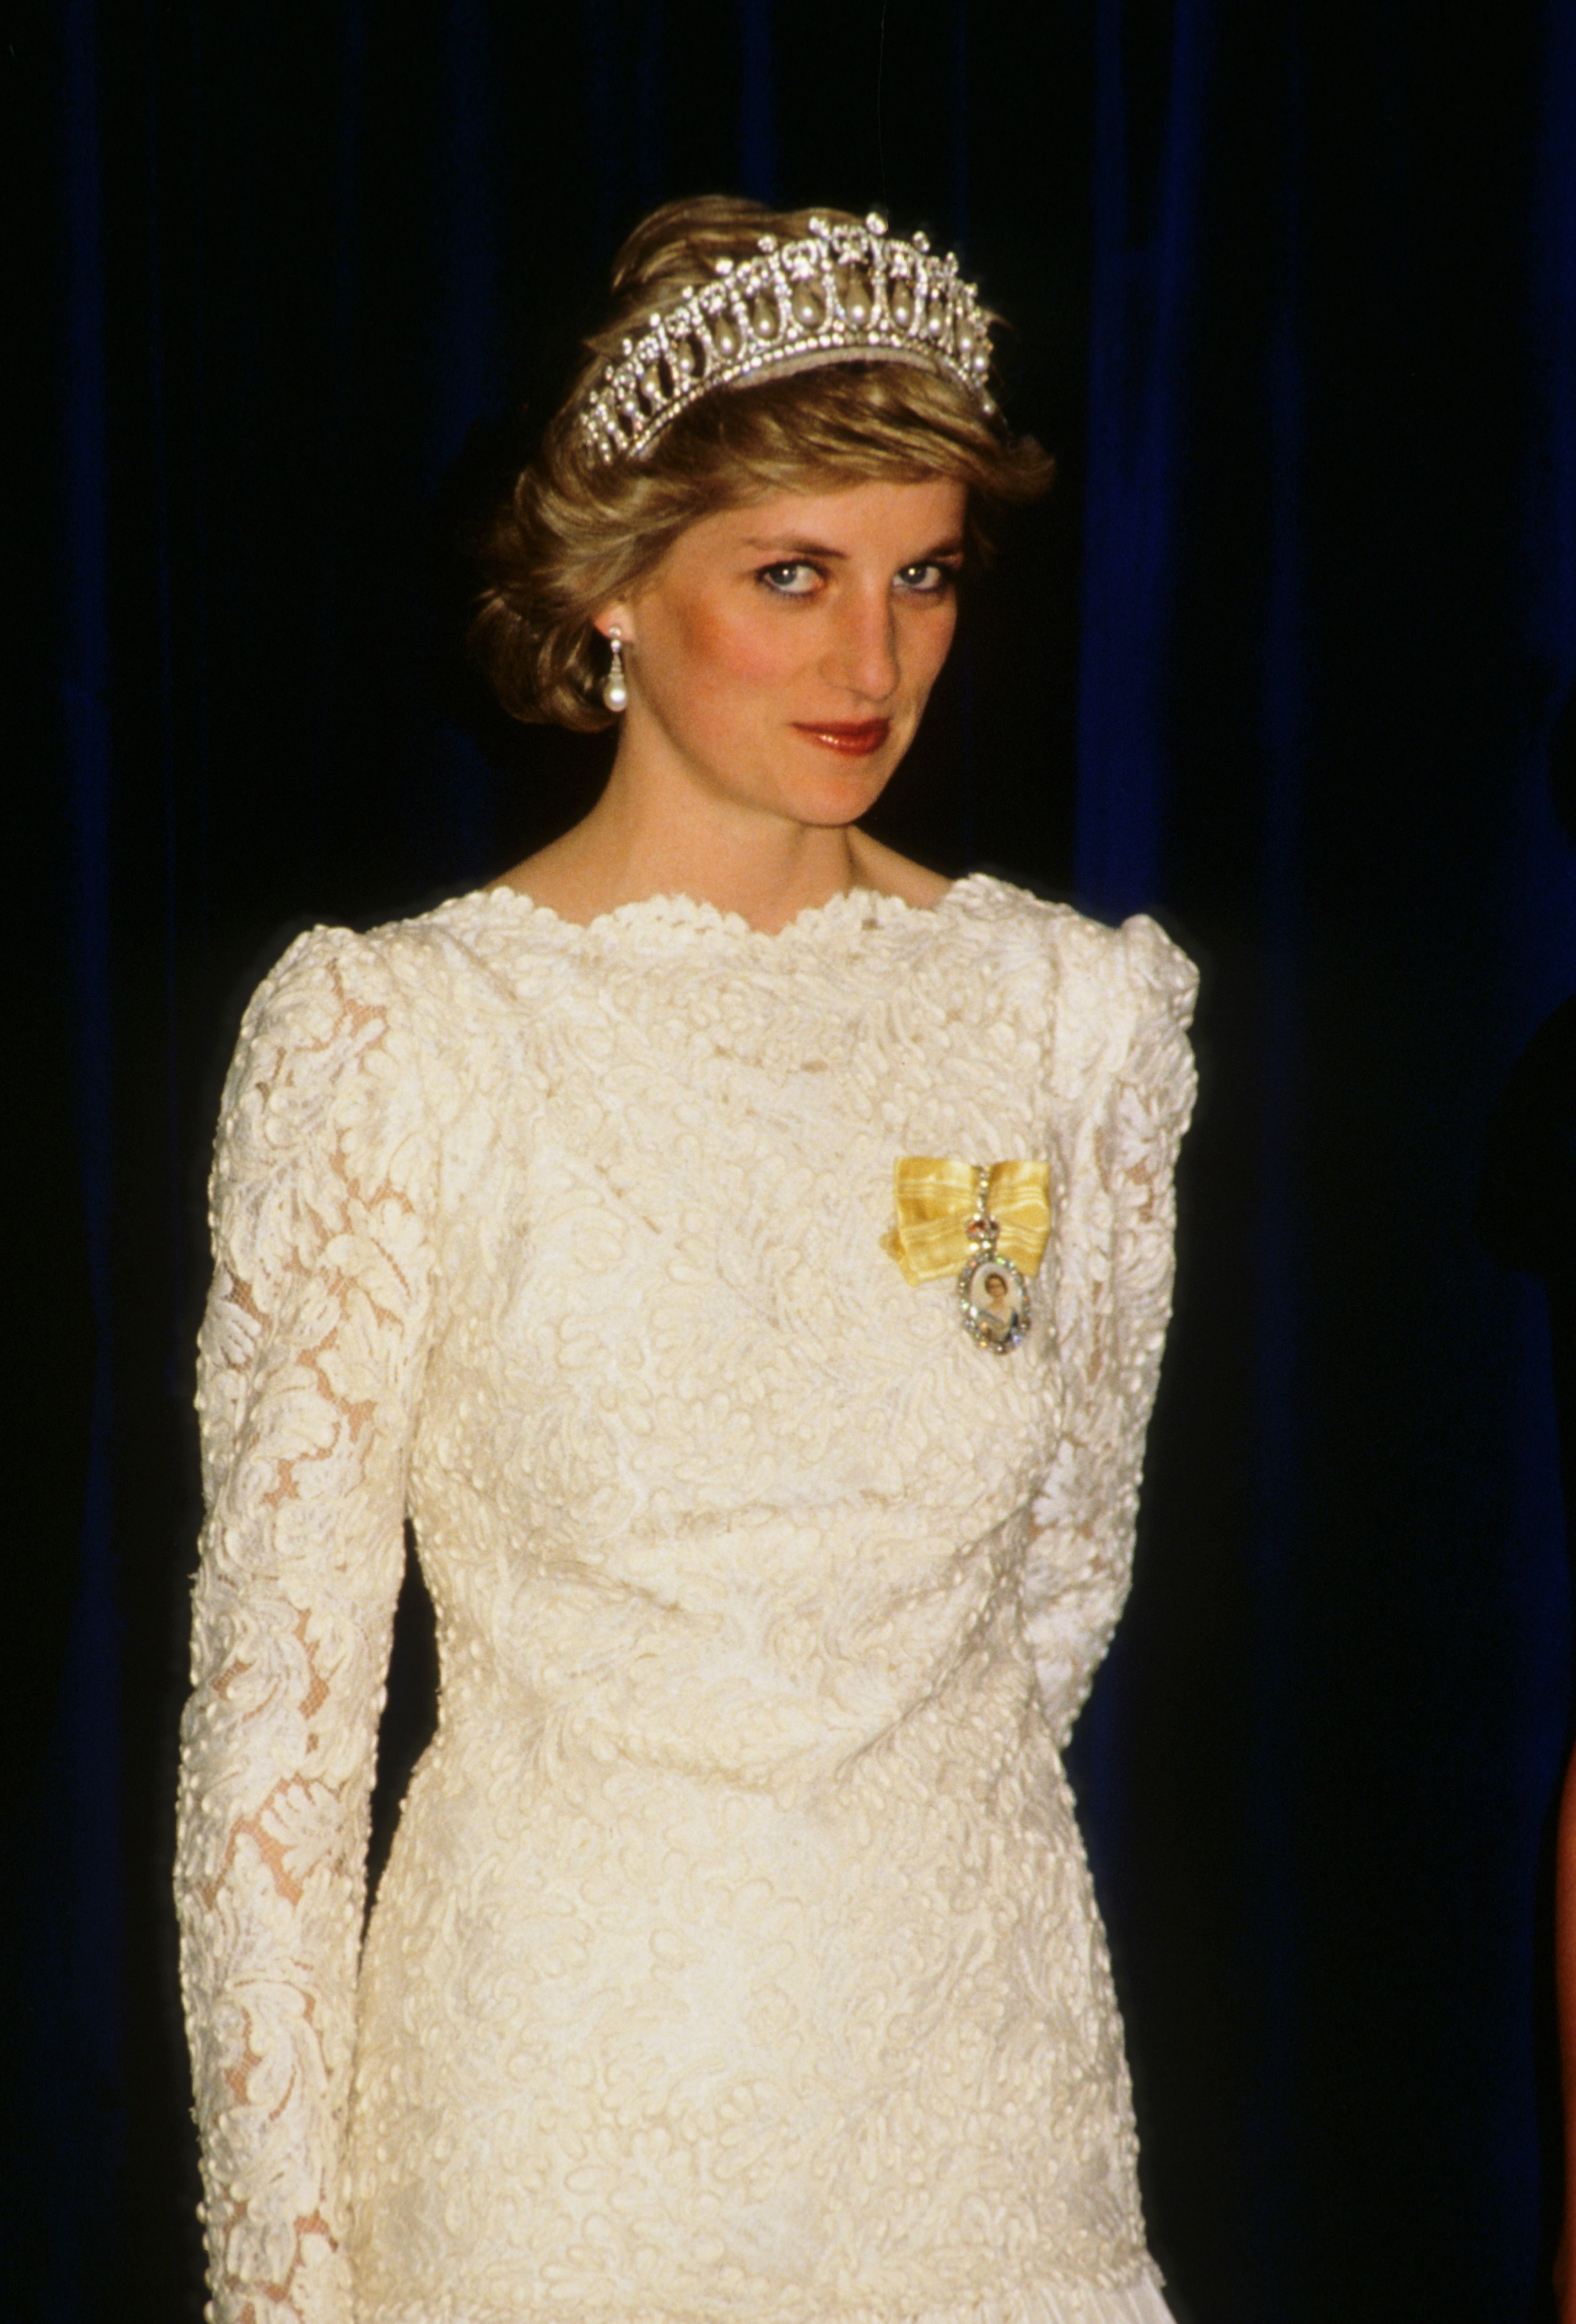 Princess Diana in Vancouver on May 3, 1986 / Getty Images